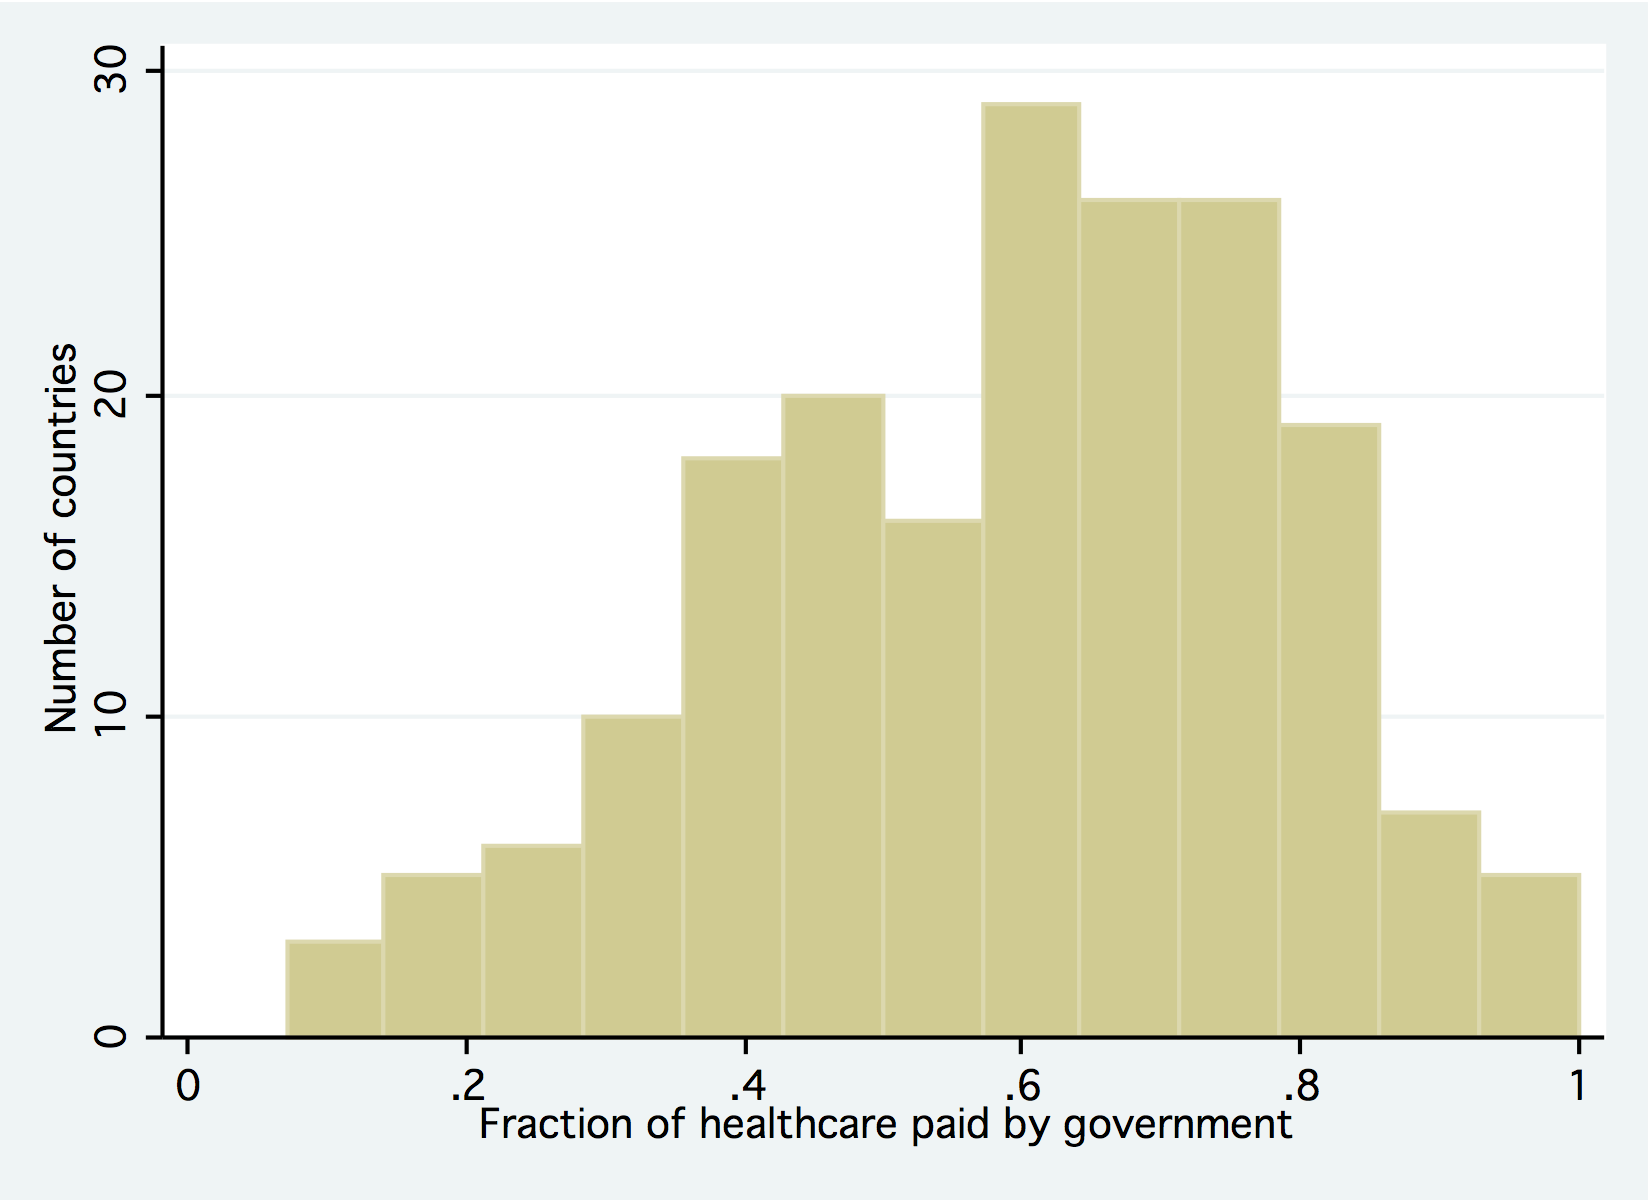 General government expenditure on health as percent of total expenditure on health, 2008.